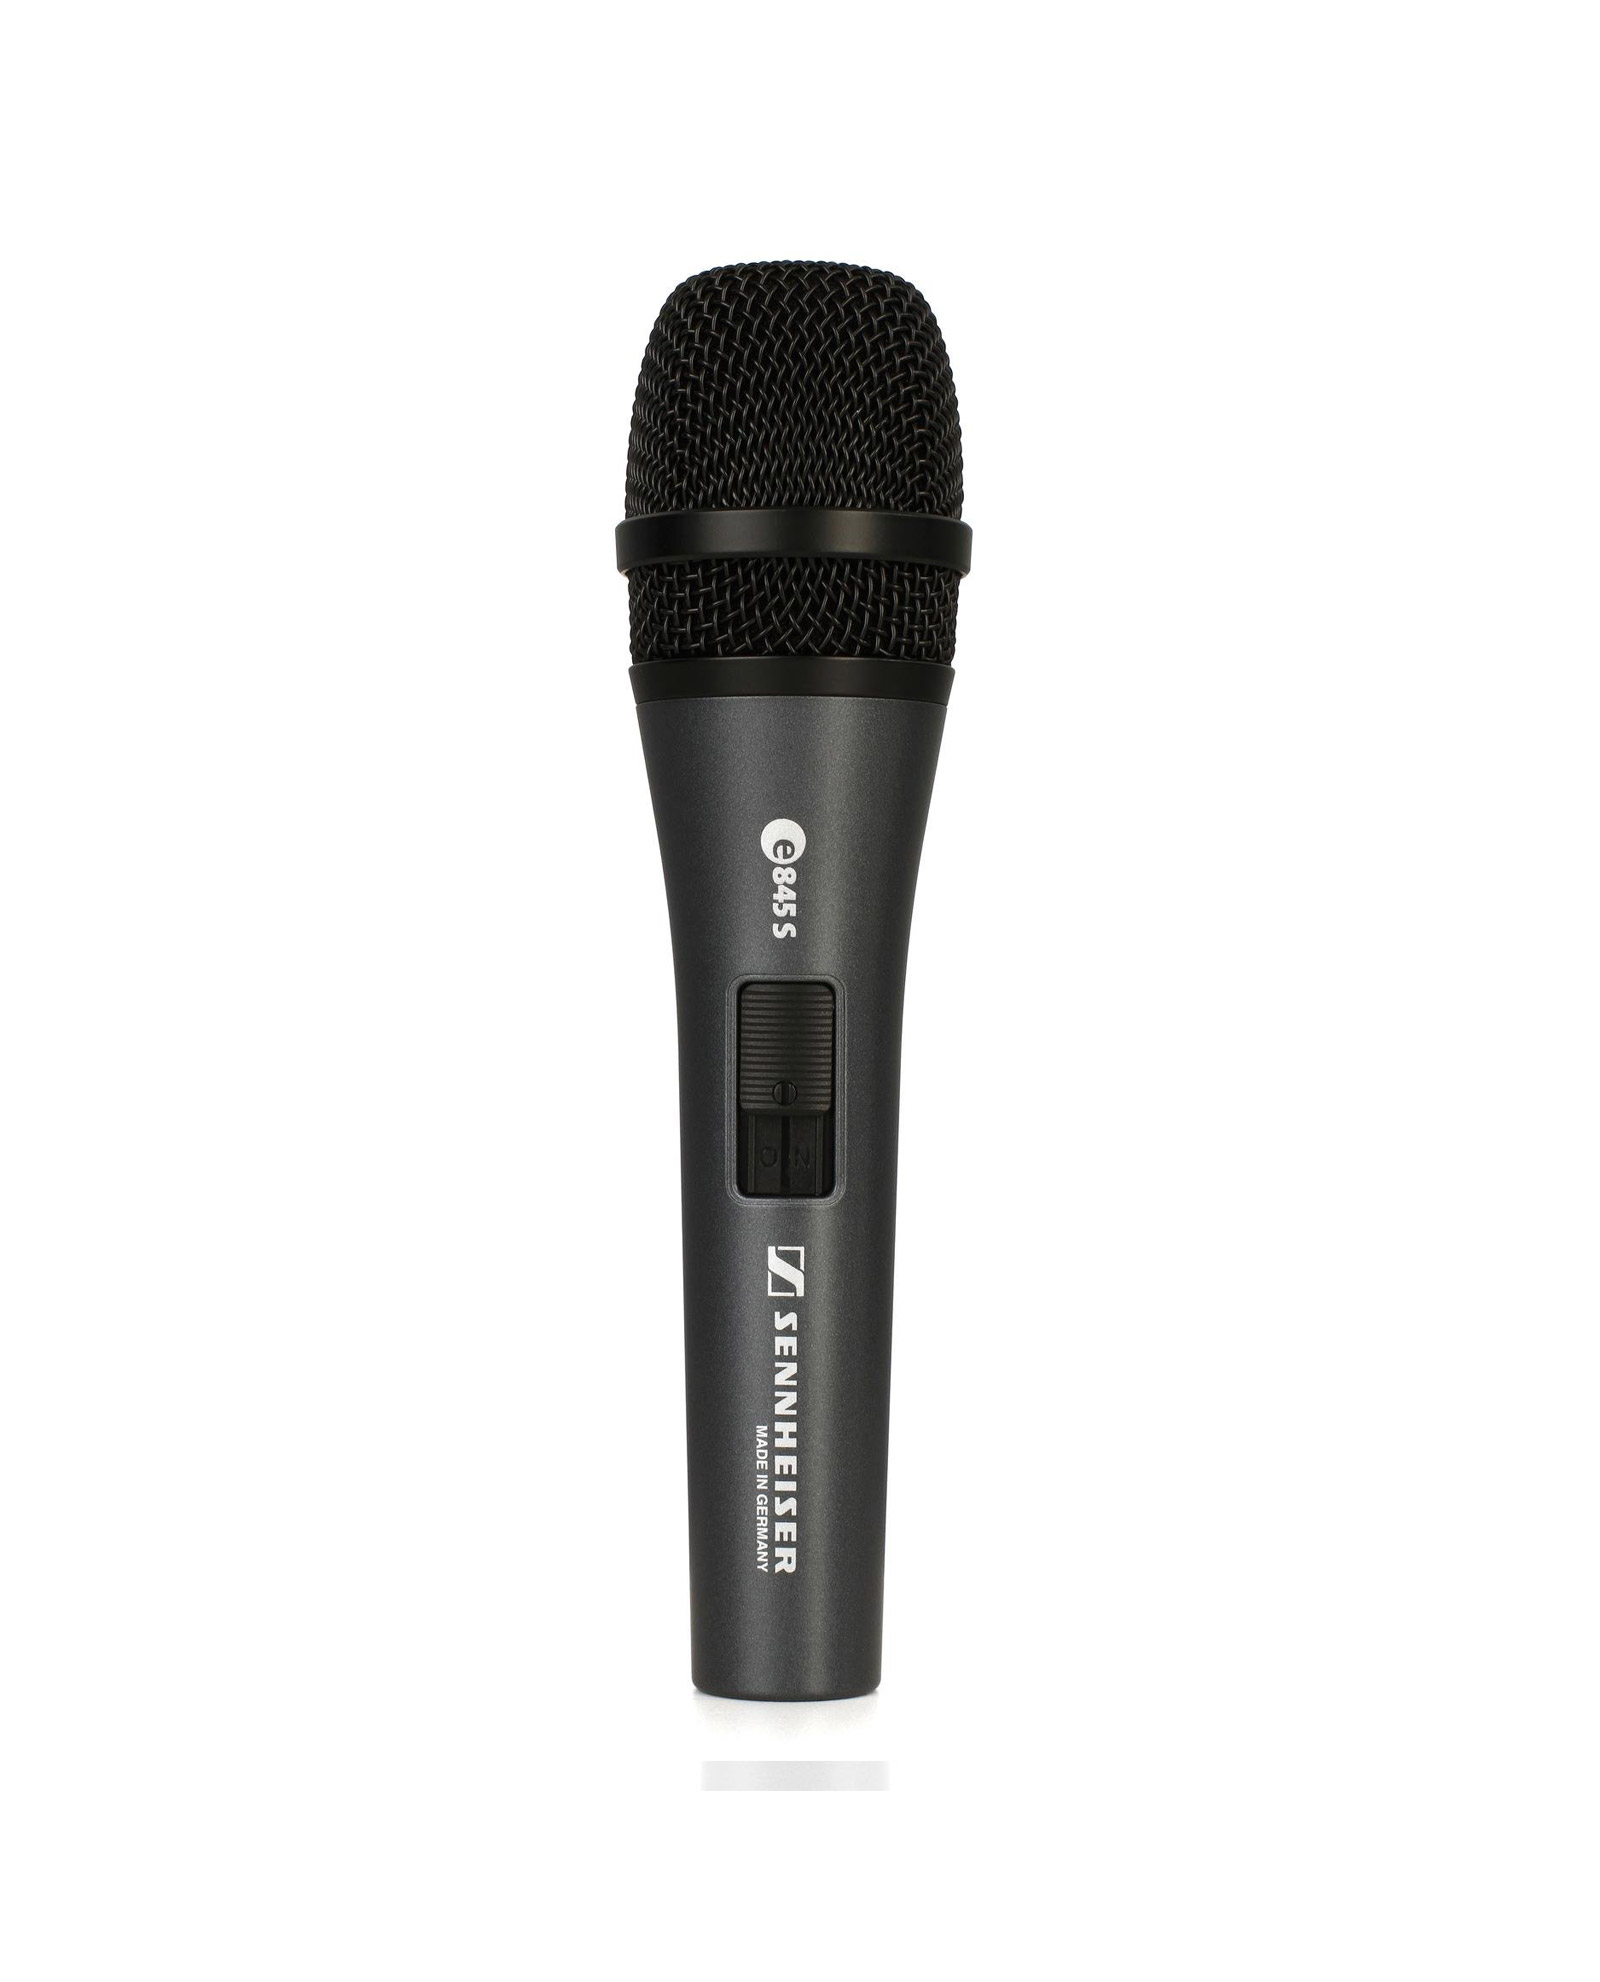 Sennheiser E 845 Vocal Microphone Dynamic Super Cardioid Microphone With Switch